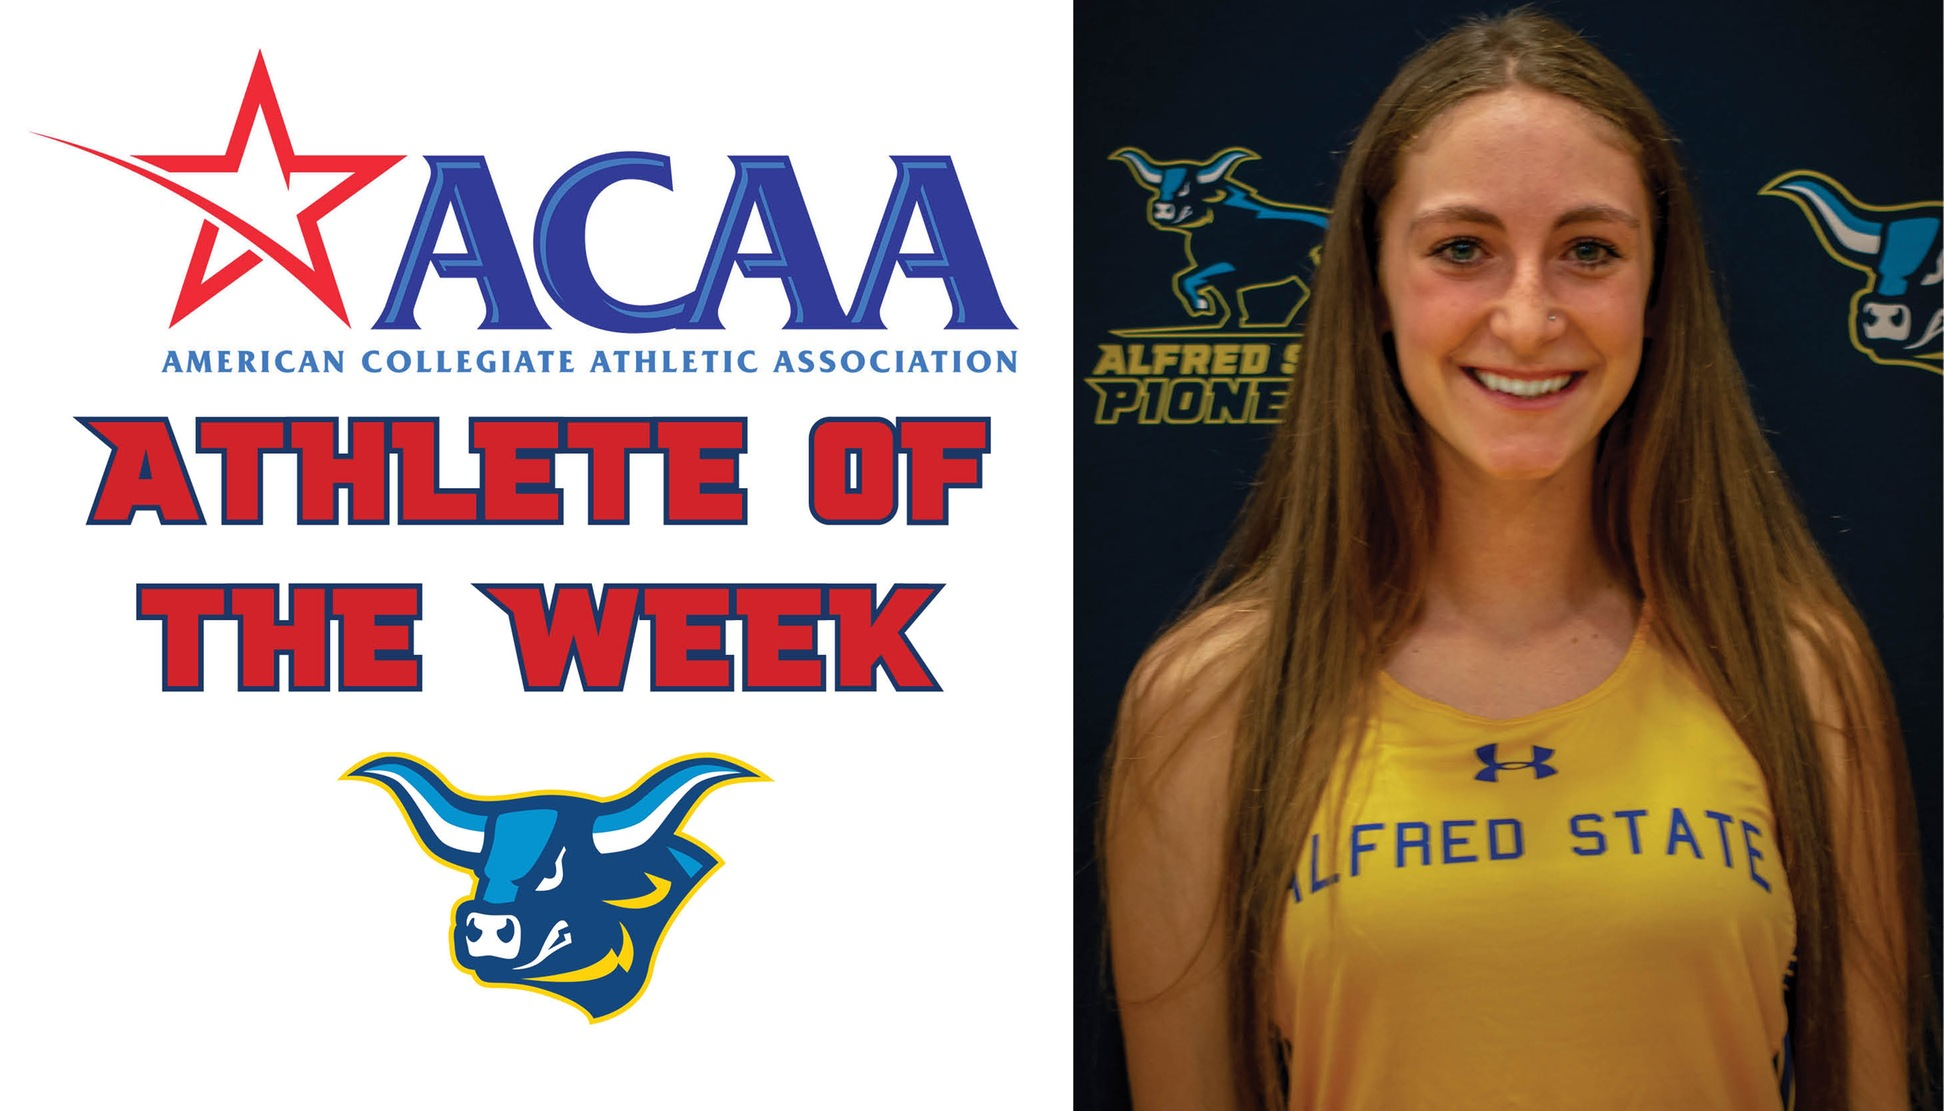 Veronica Dailey named ACAA Cross Country Runner of the Week